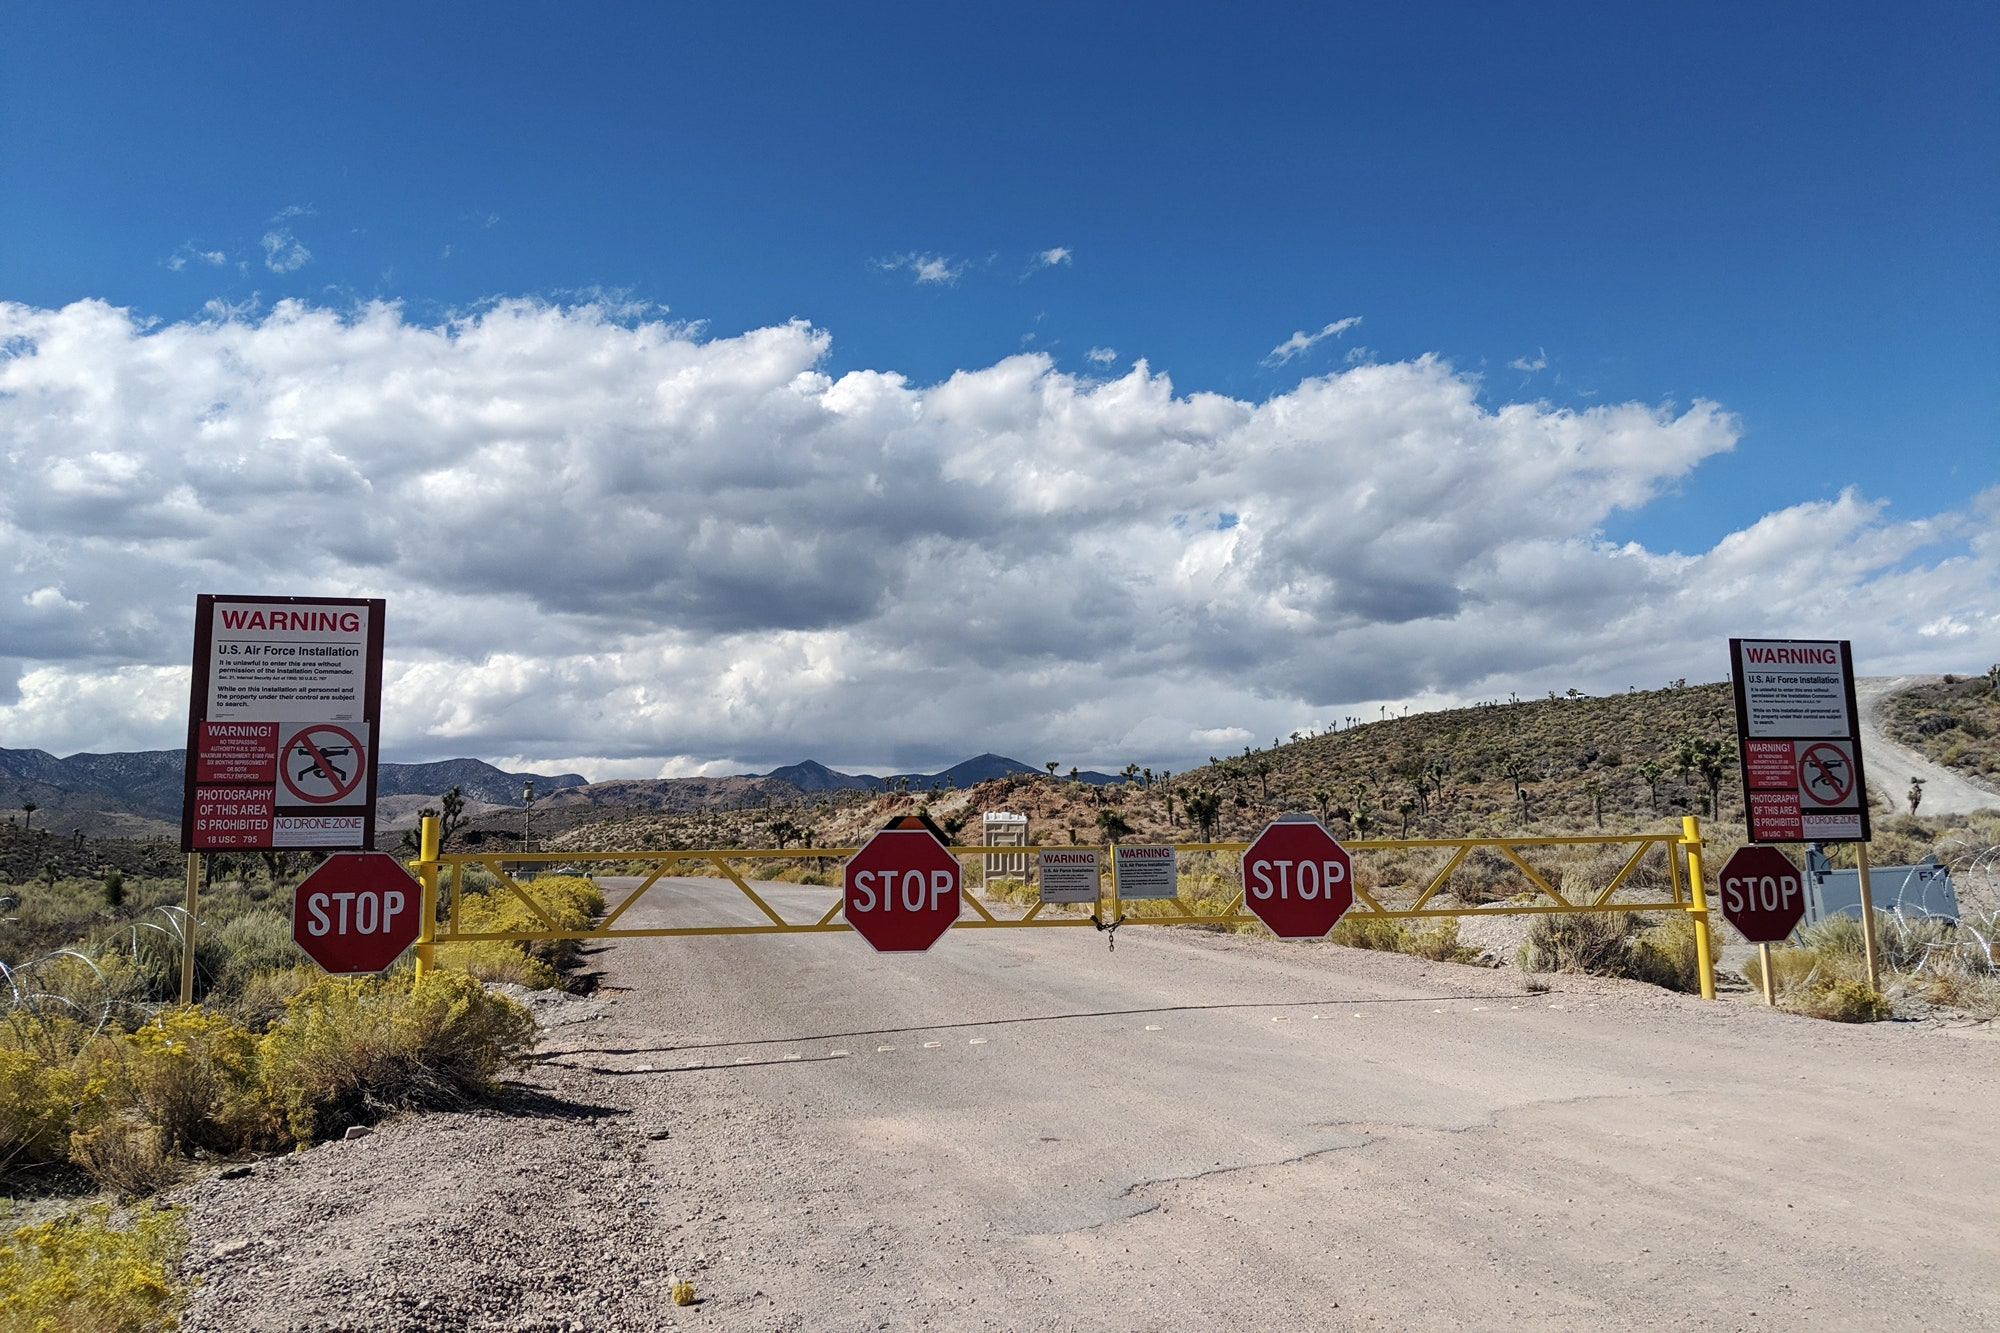 Area 51 With Warning Signs